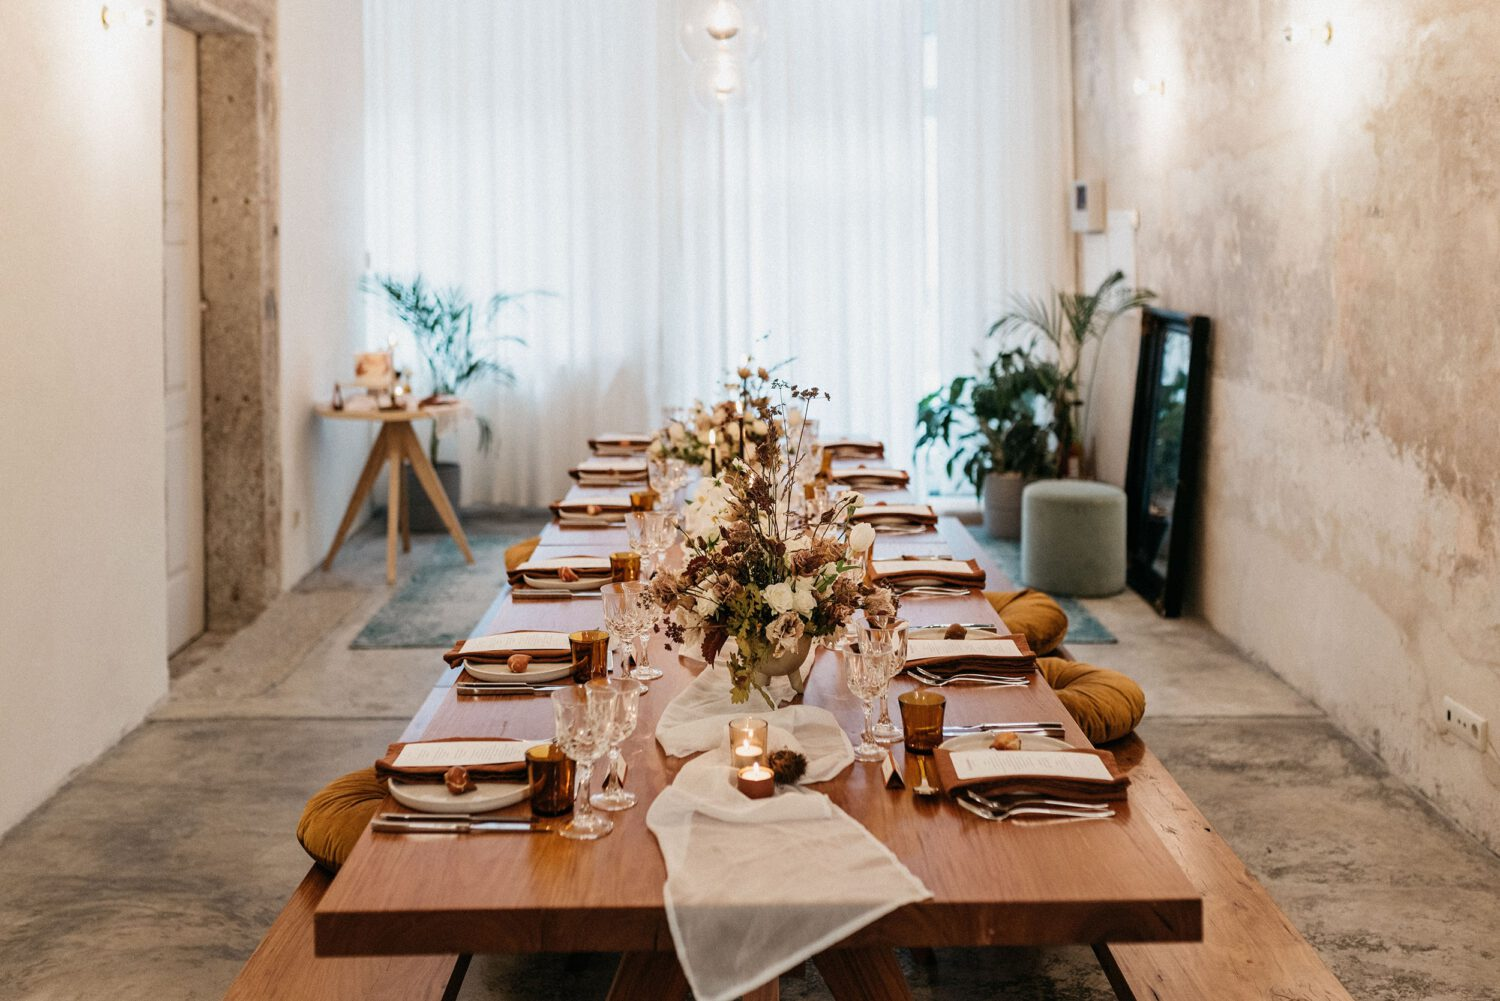 General view of the Brava launch event room, where the meal table is in the center, carefully decorated and ready to receive the guests, as in a small and intimate wedding.